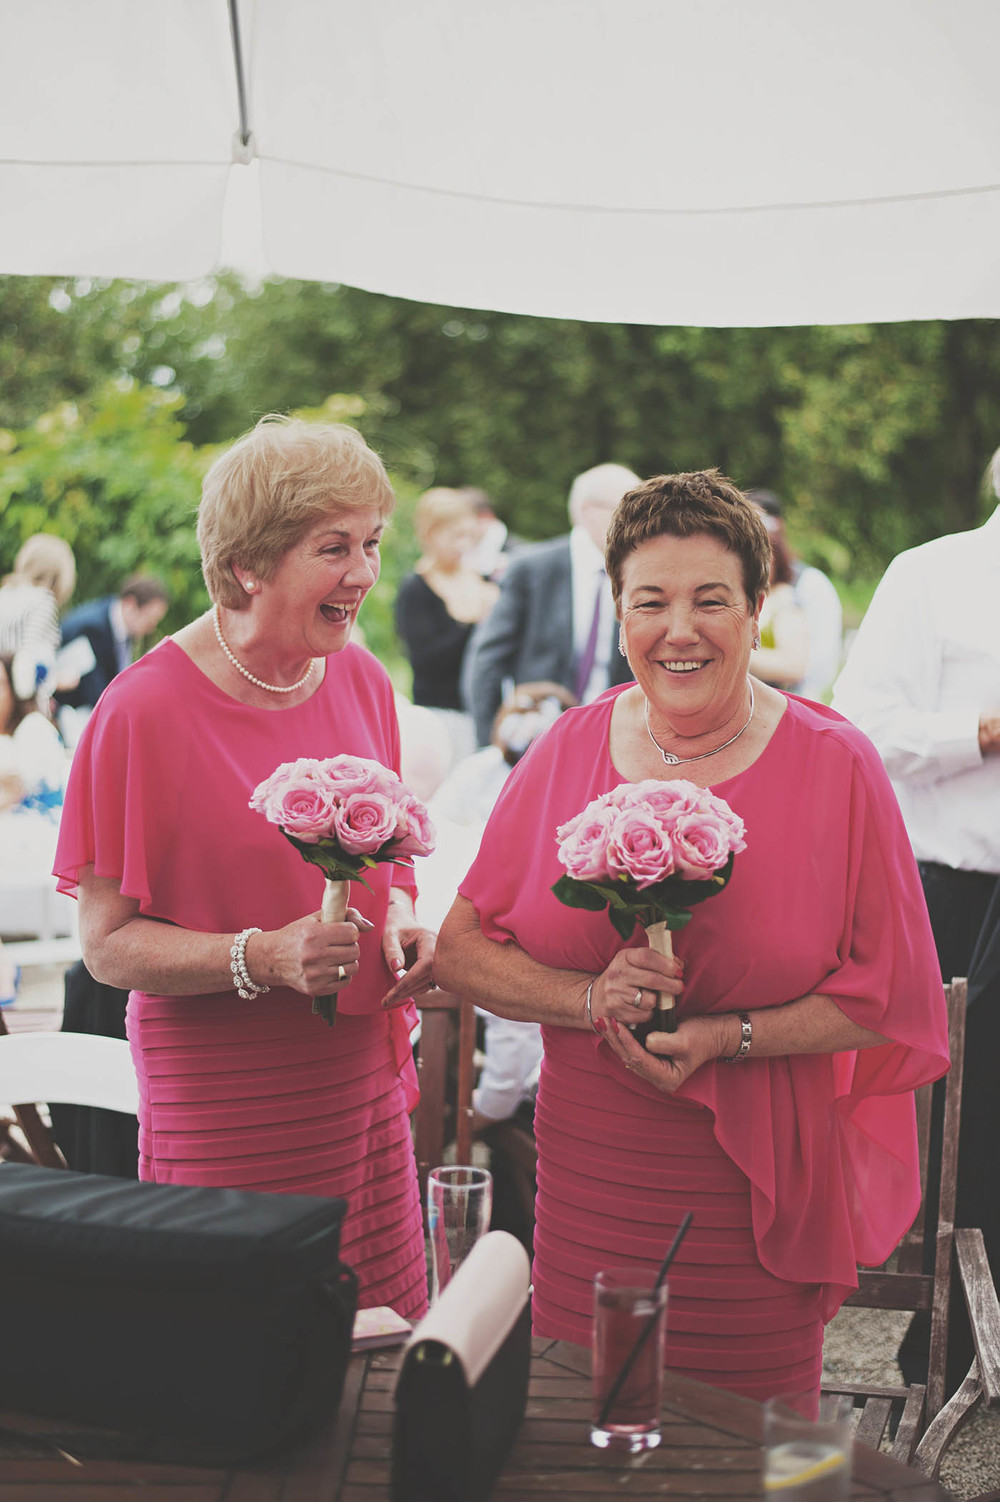 The Millhouse, Slane wedding, guests in the same outfits with bridesmaids flowers